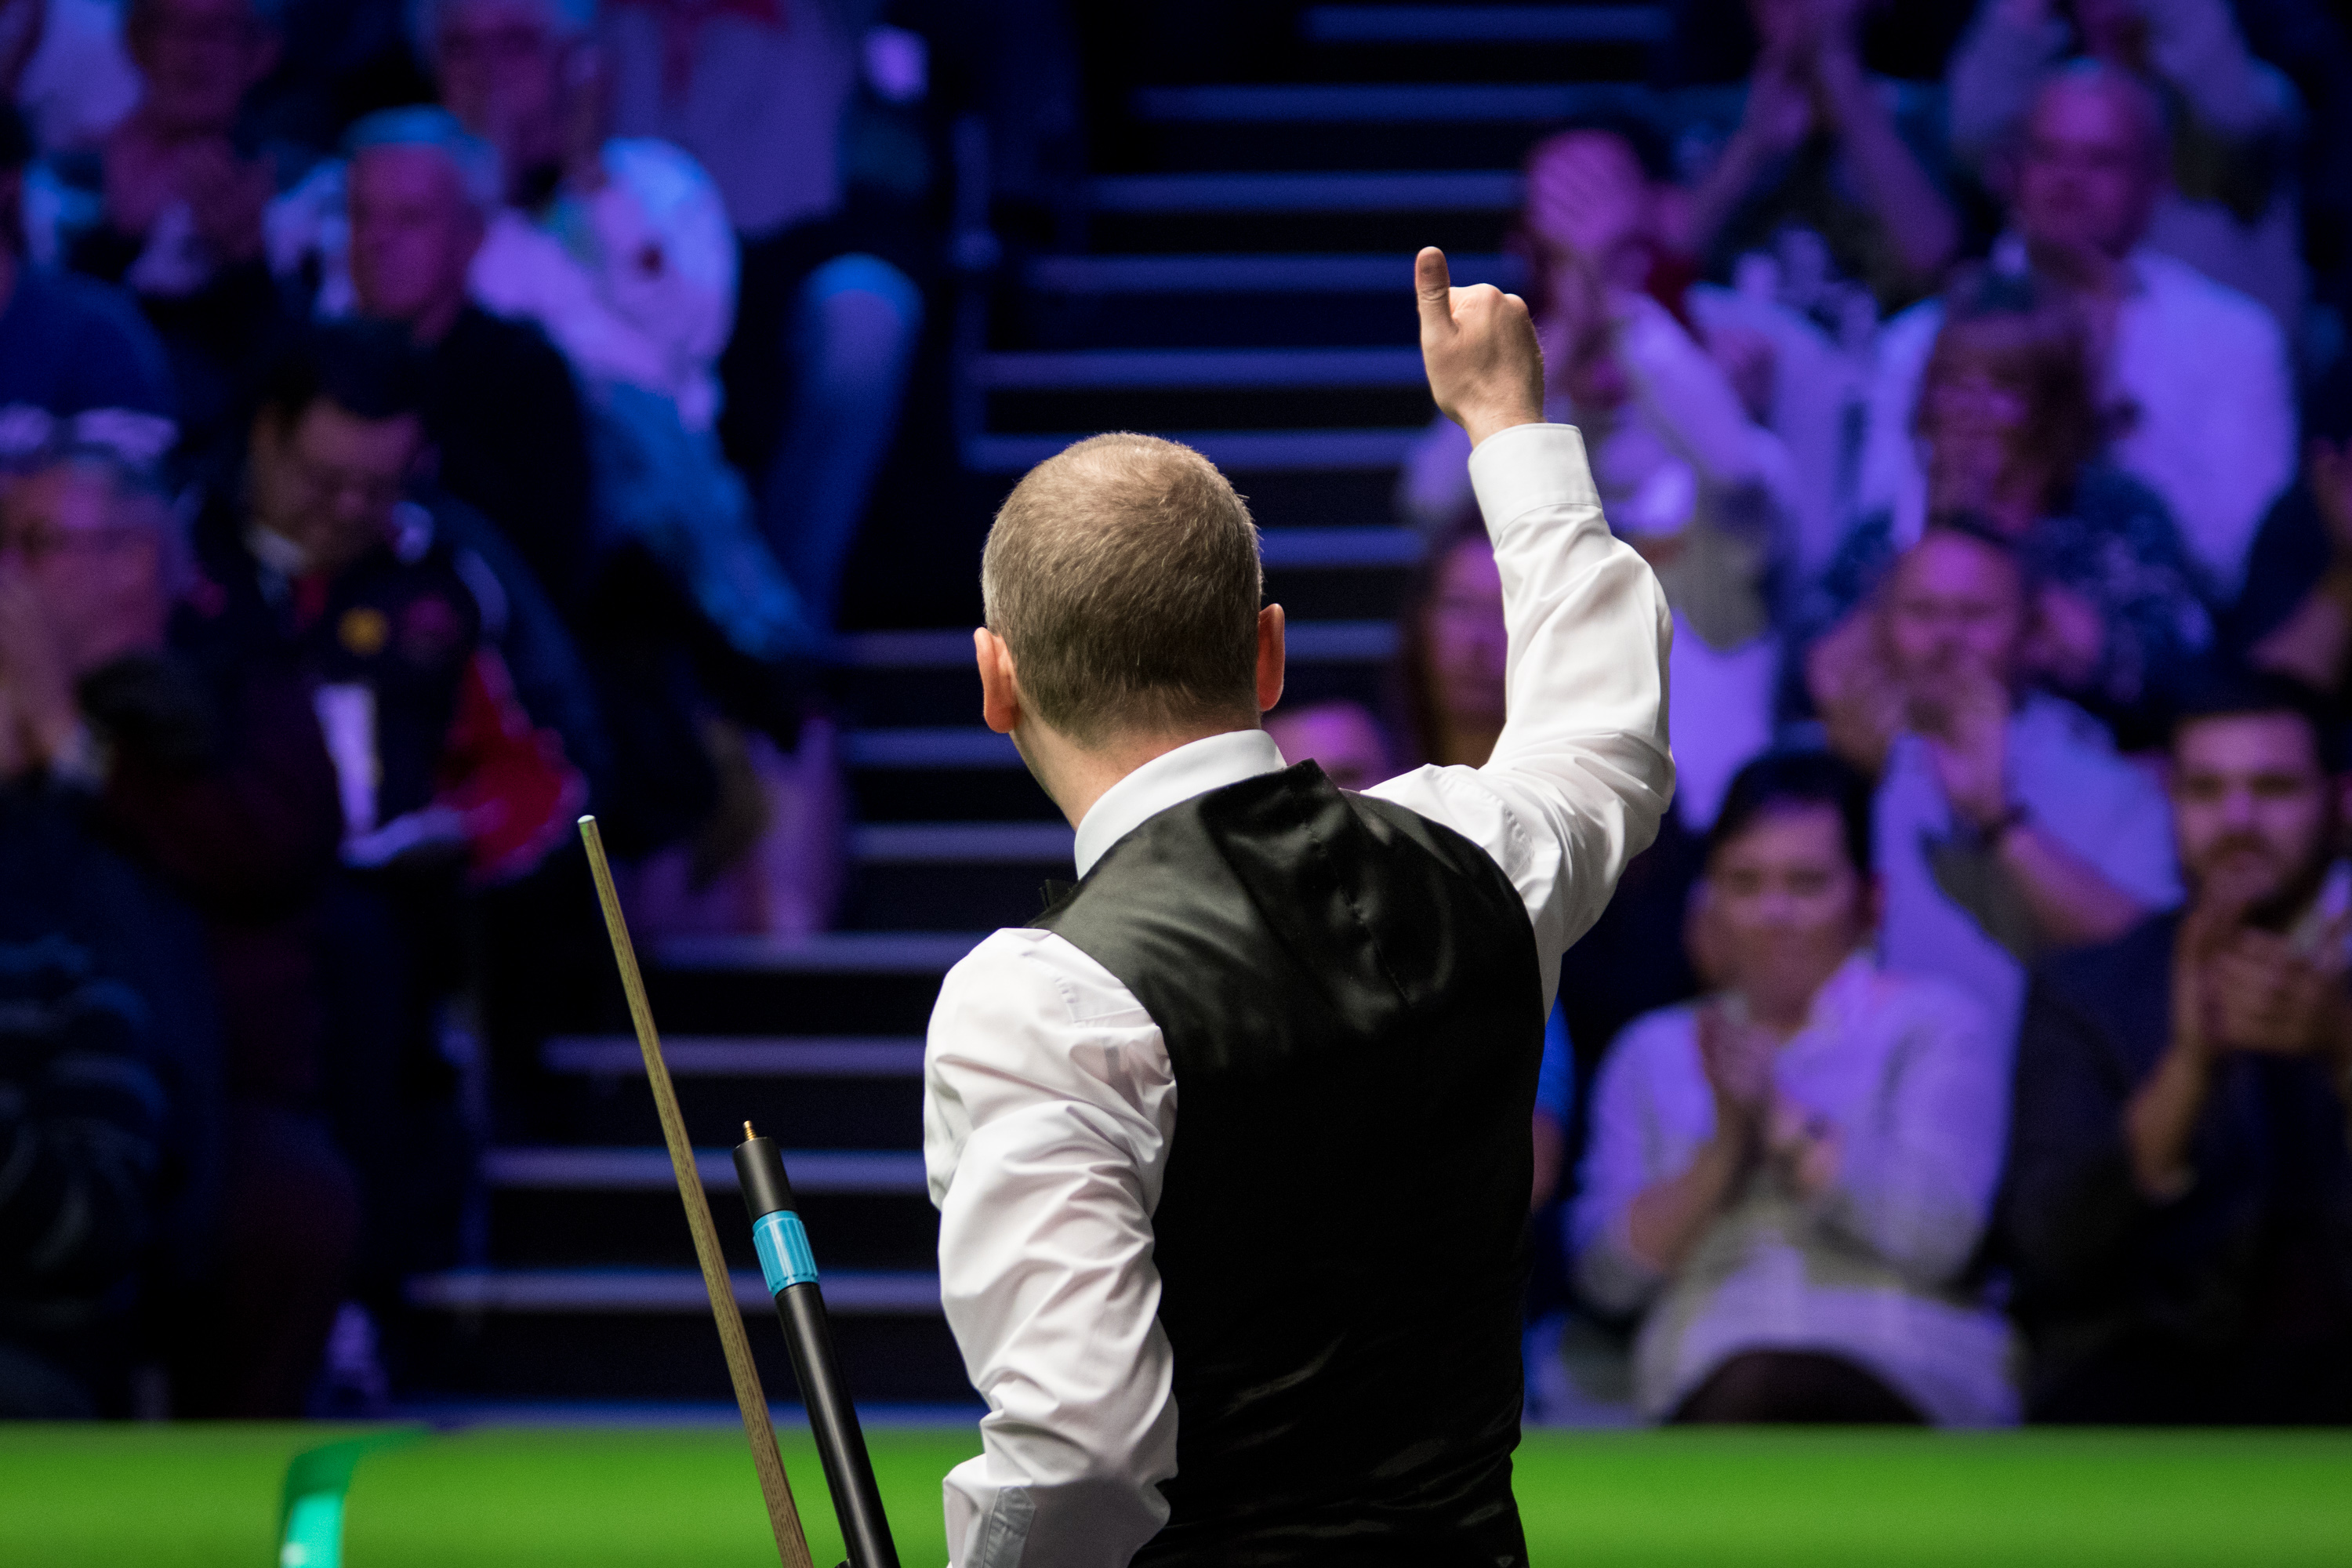 Trump Joins Mark Selby And Ding Junhui As The Top Three Players In World To Exit Tournament At York Barbican Before Last 16 Stage